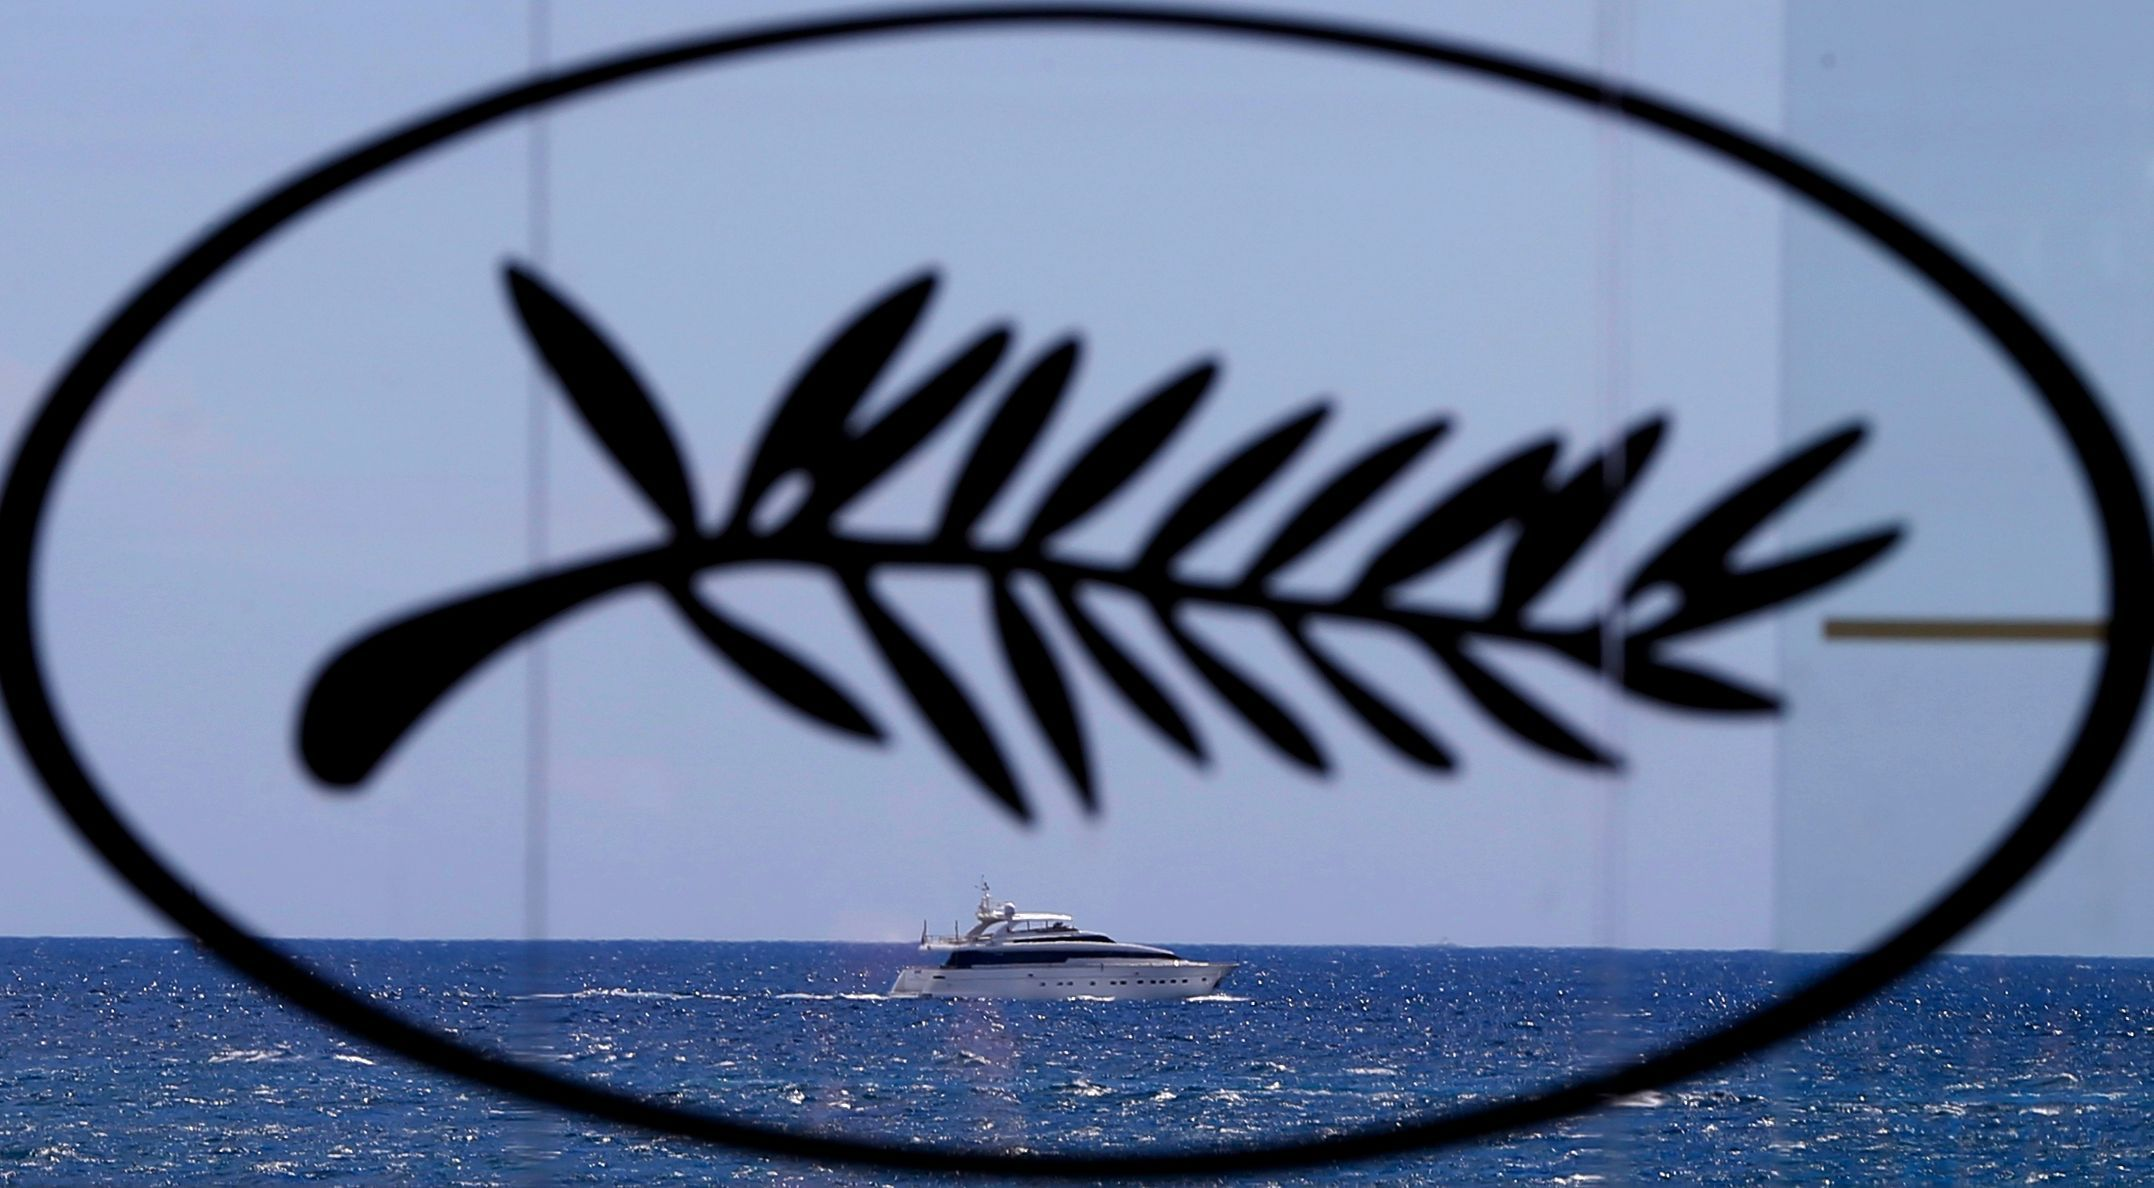 A yacht is seen in the Bay of Cannes through a Palme d'Or symbol on the eve of the opening of the 67th Cannes Film Festival in Cannes